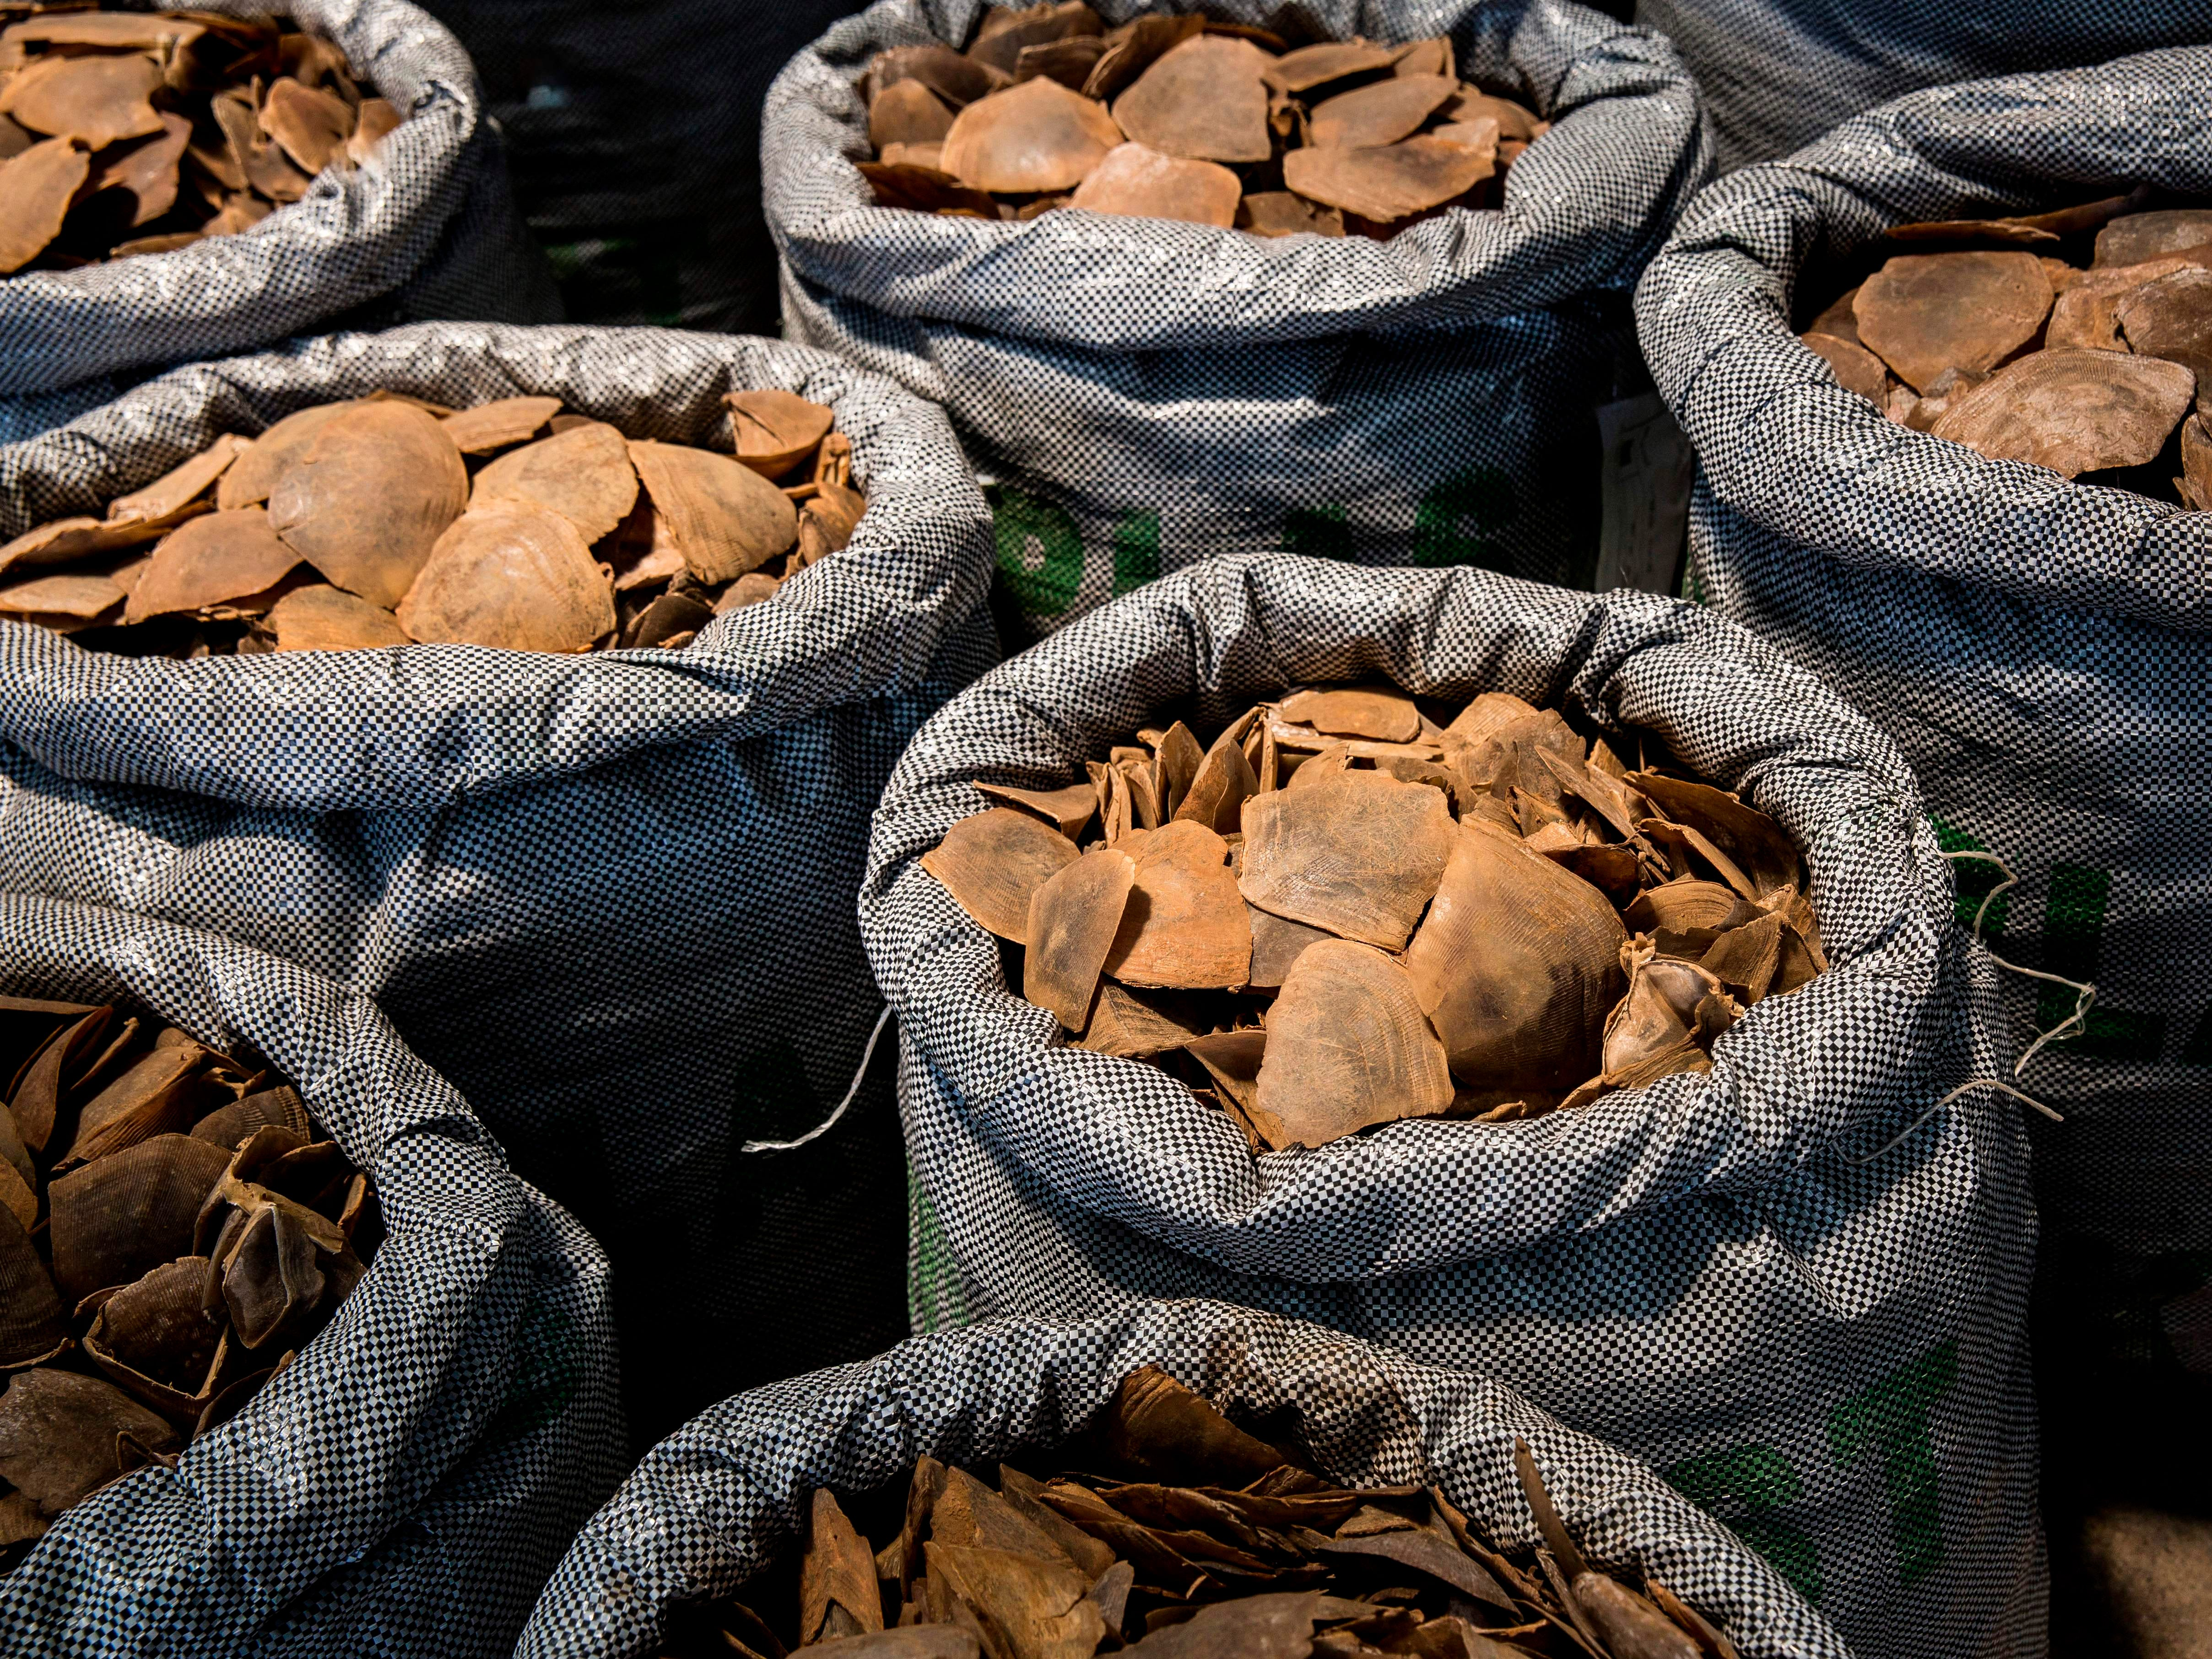 Seized endangered pangolin scales are seen during a press conference at the Kwai Chung Customhouse Cargo Examination Compound in Hong Kong on Sept. 5, 2018.  The Hong Kong Customs and the Agriculture, Fisheries and Conservation Department (AFCD) from June to August 2018 mounted Operation Defender against the smuggling of endangered species at the airport, seaport, land boundary and railway control points into the territory. Some 118 cases were reported during the operation period resulting in the seizure valued at 2.4 million USD, with 82 arrests made.